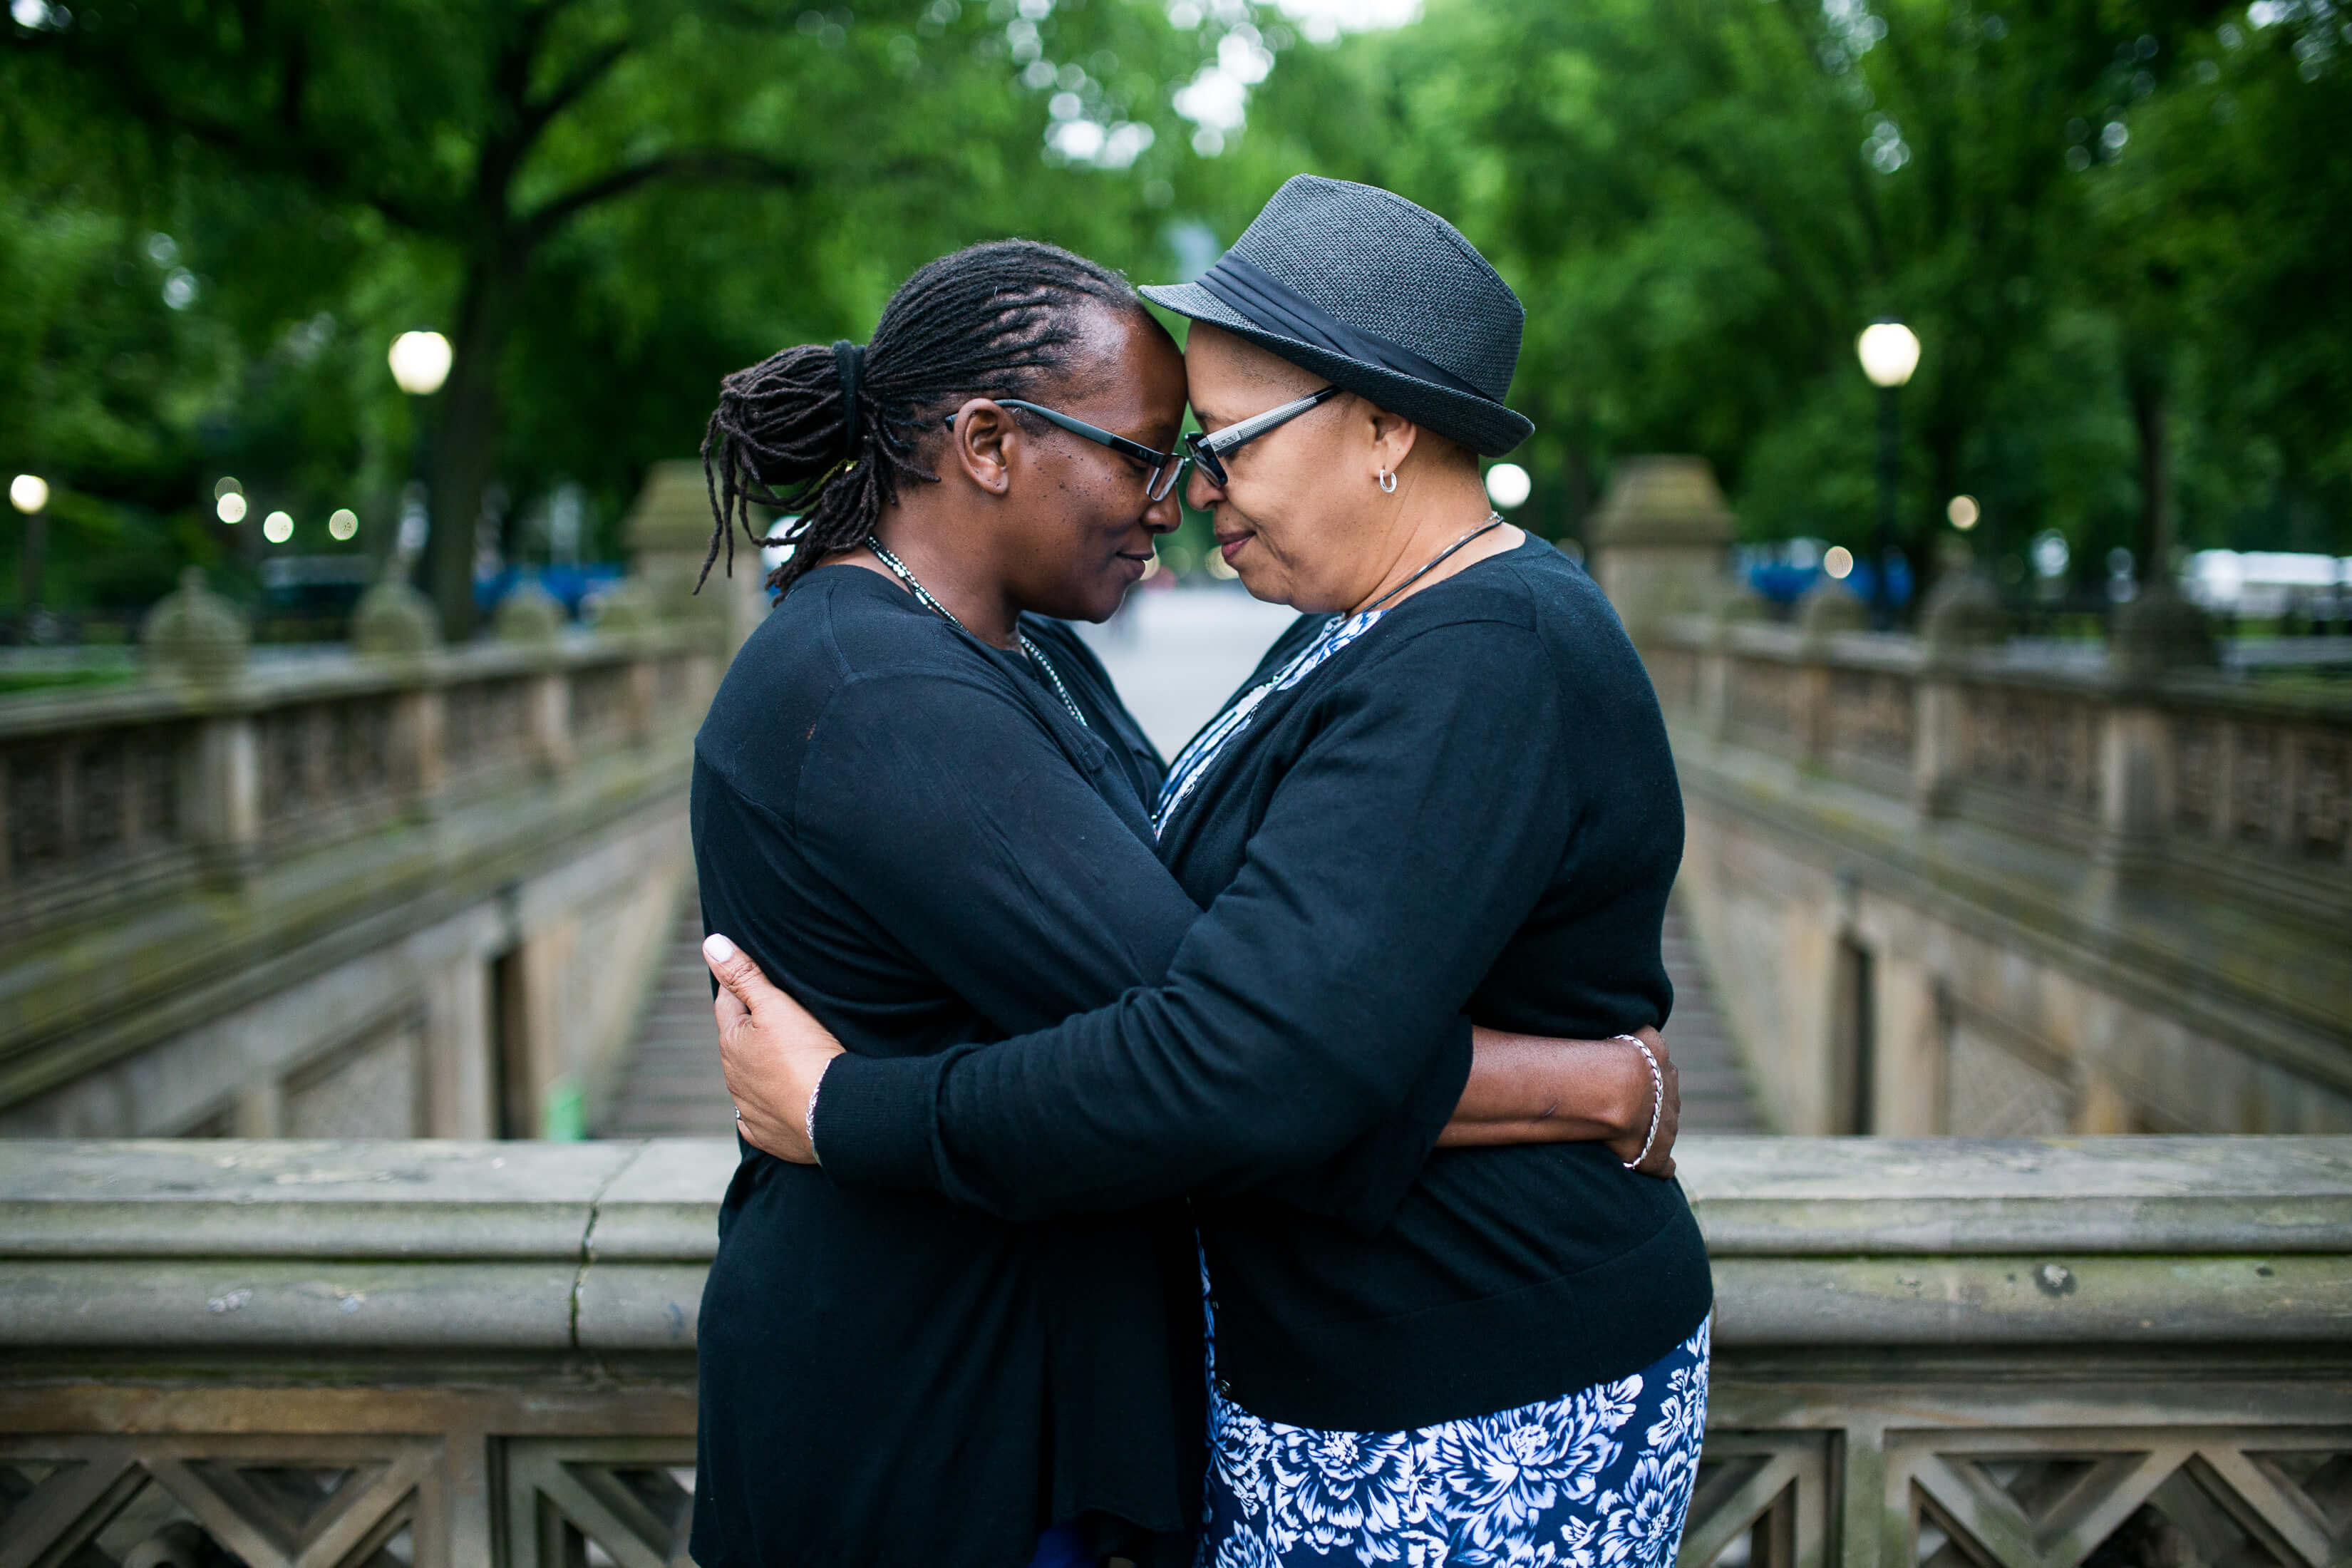 Two lovers embrace in Central Park, New York City, USA.